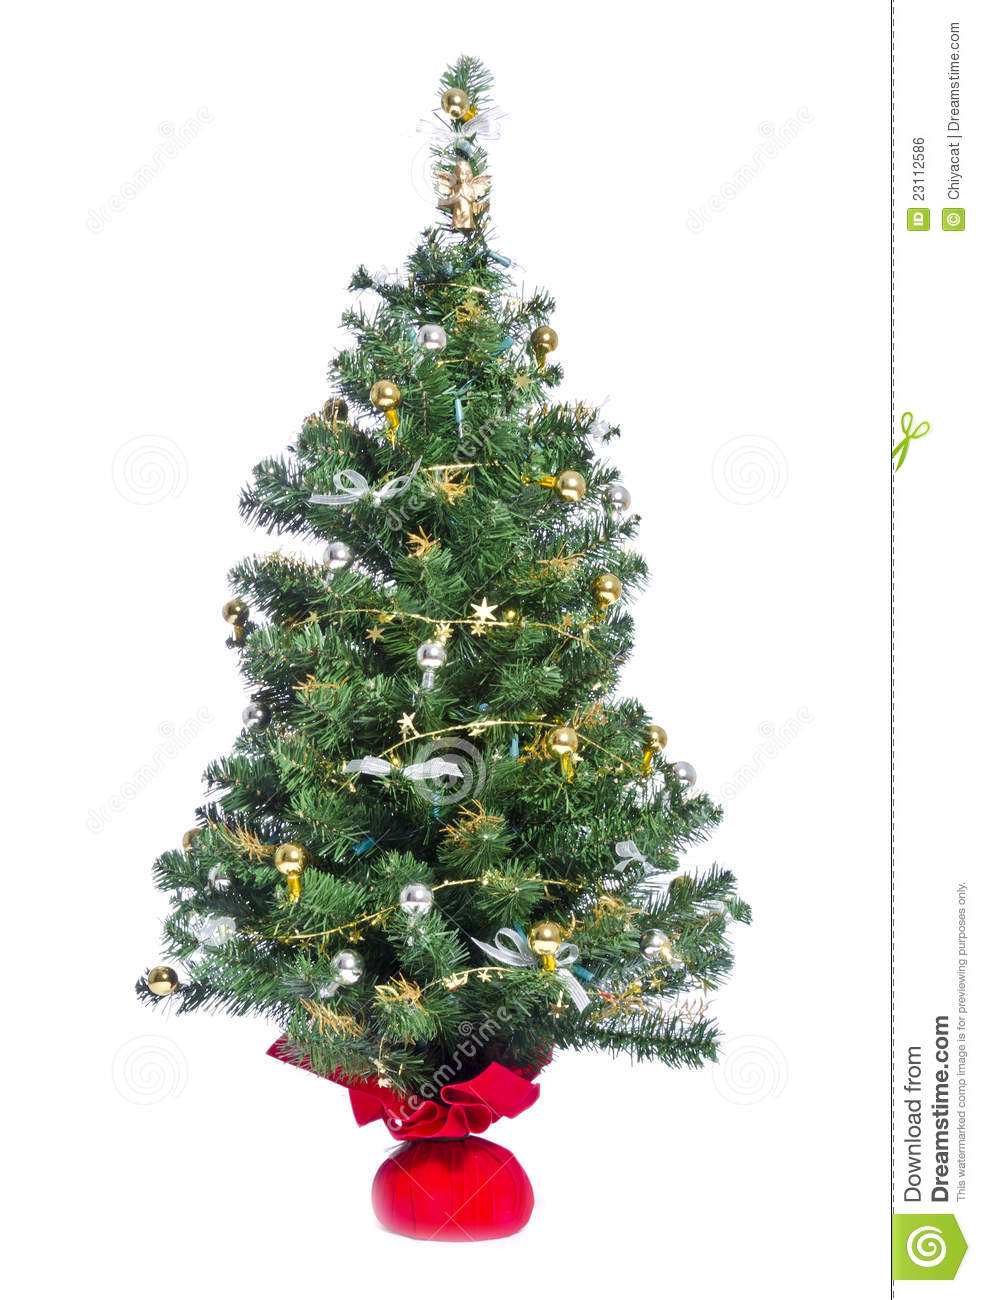 Small christmas tree royalty free stock image for Small slender trees